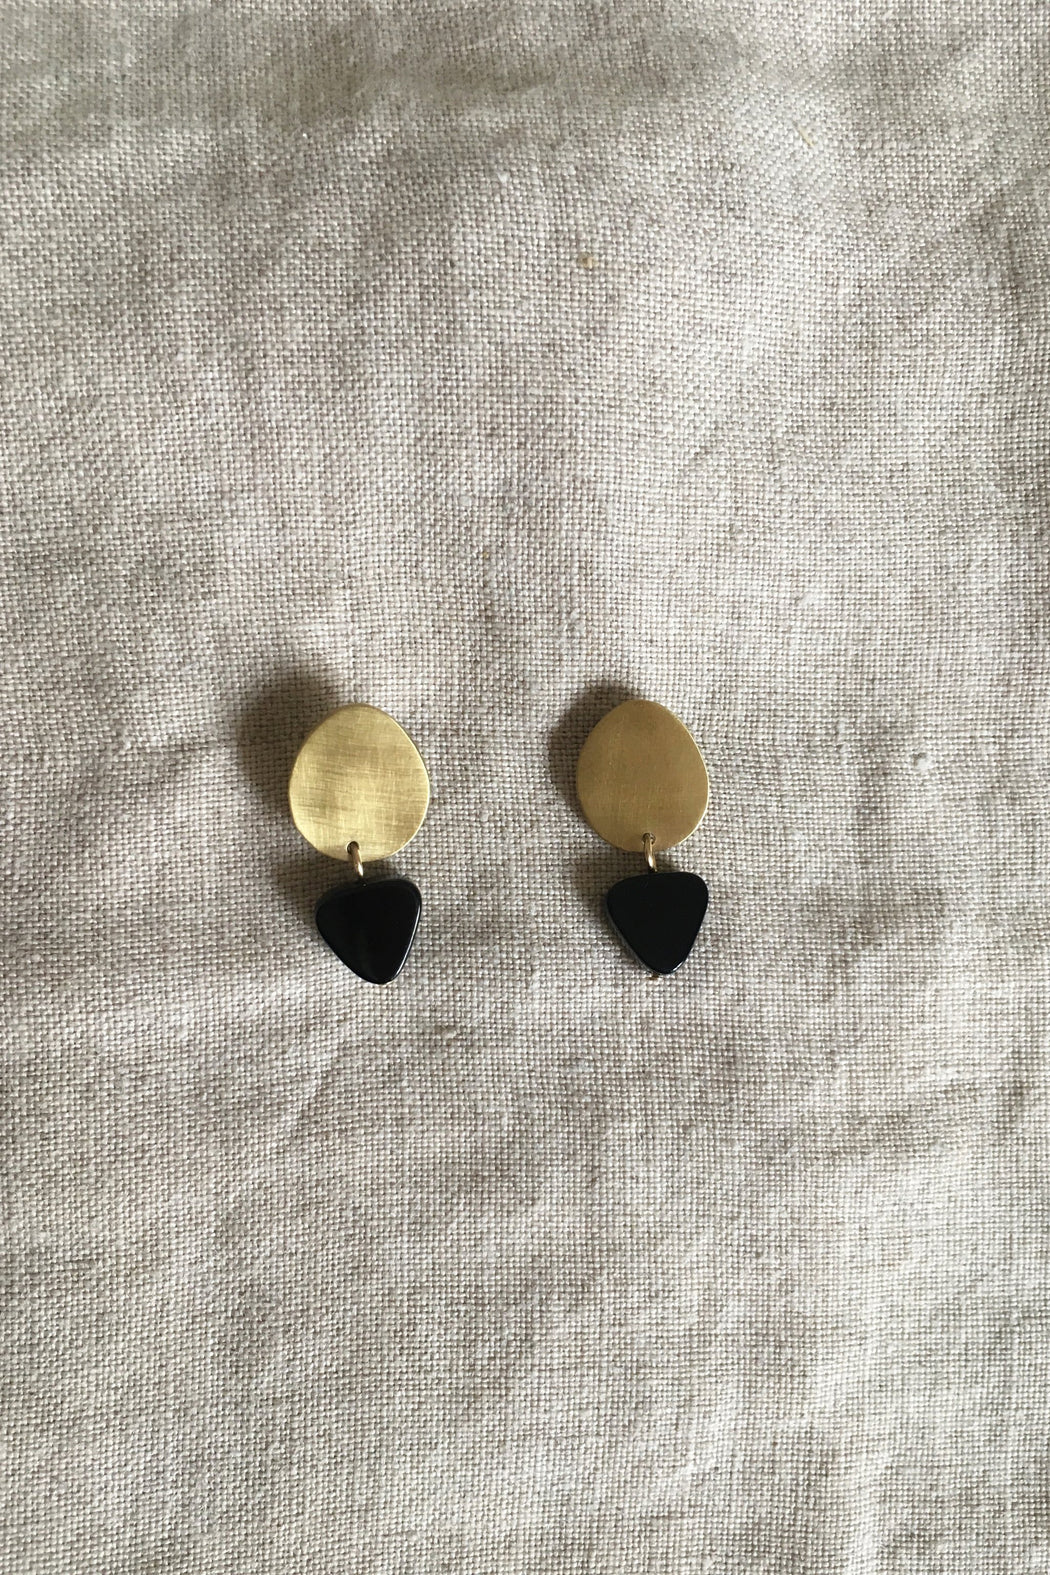 BAIUSHKI MARO earrings